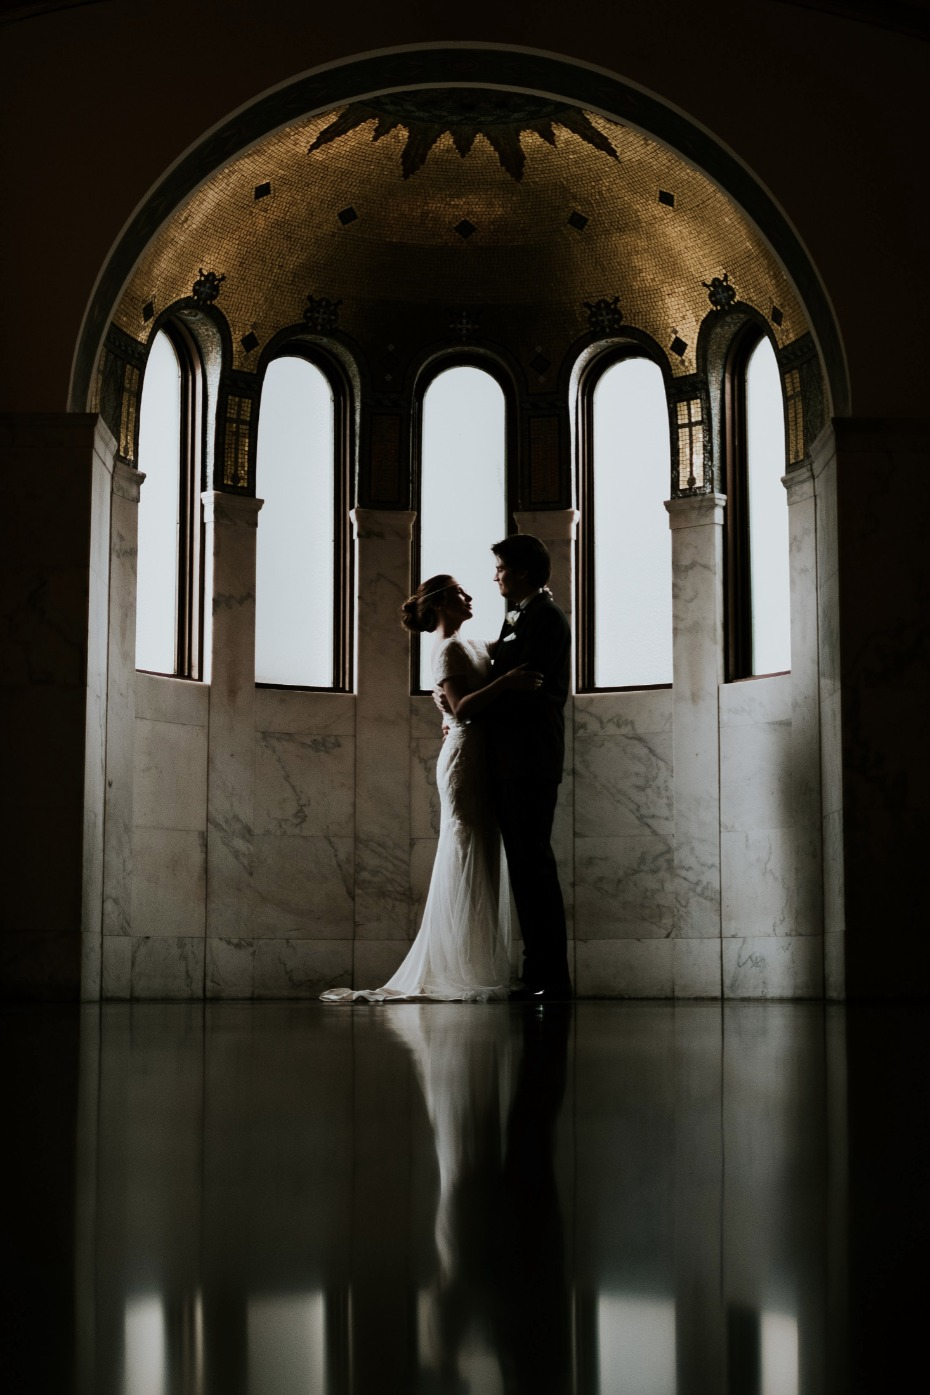 Gorgeous capture of the bride and groom